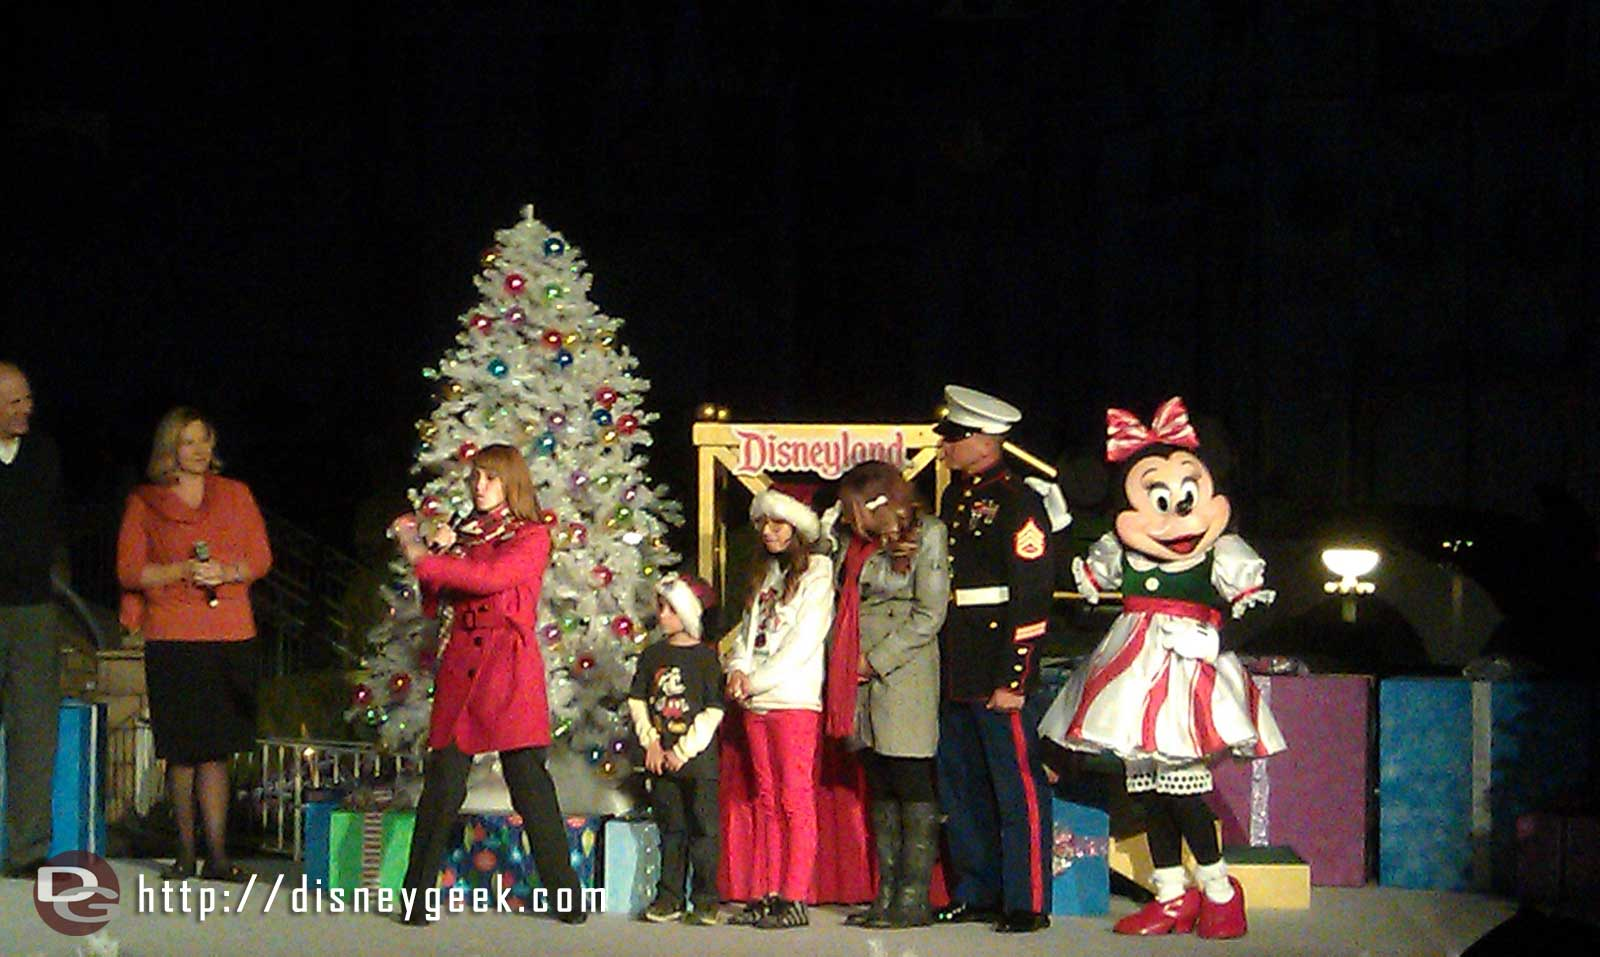 The Plummer family and Minnie arrive to light Small World